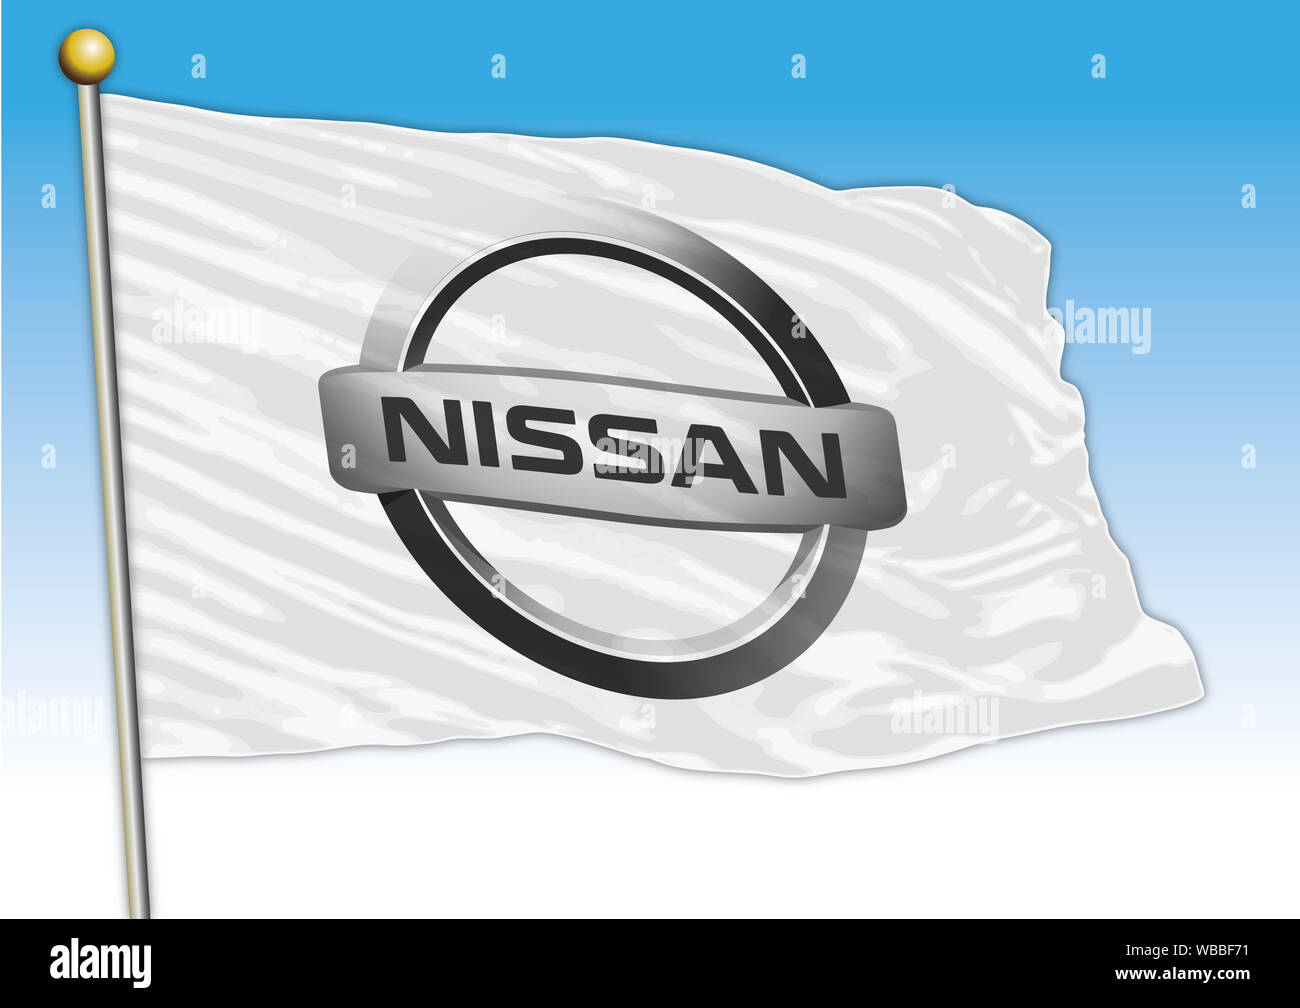 Nissan car industrial group, flag with logo, illustration Stock Photo